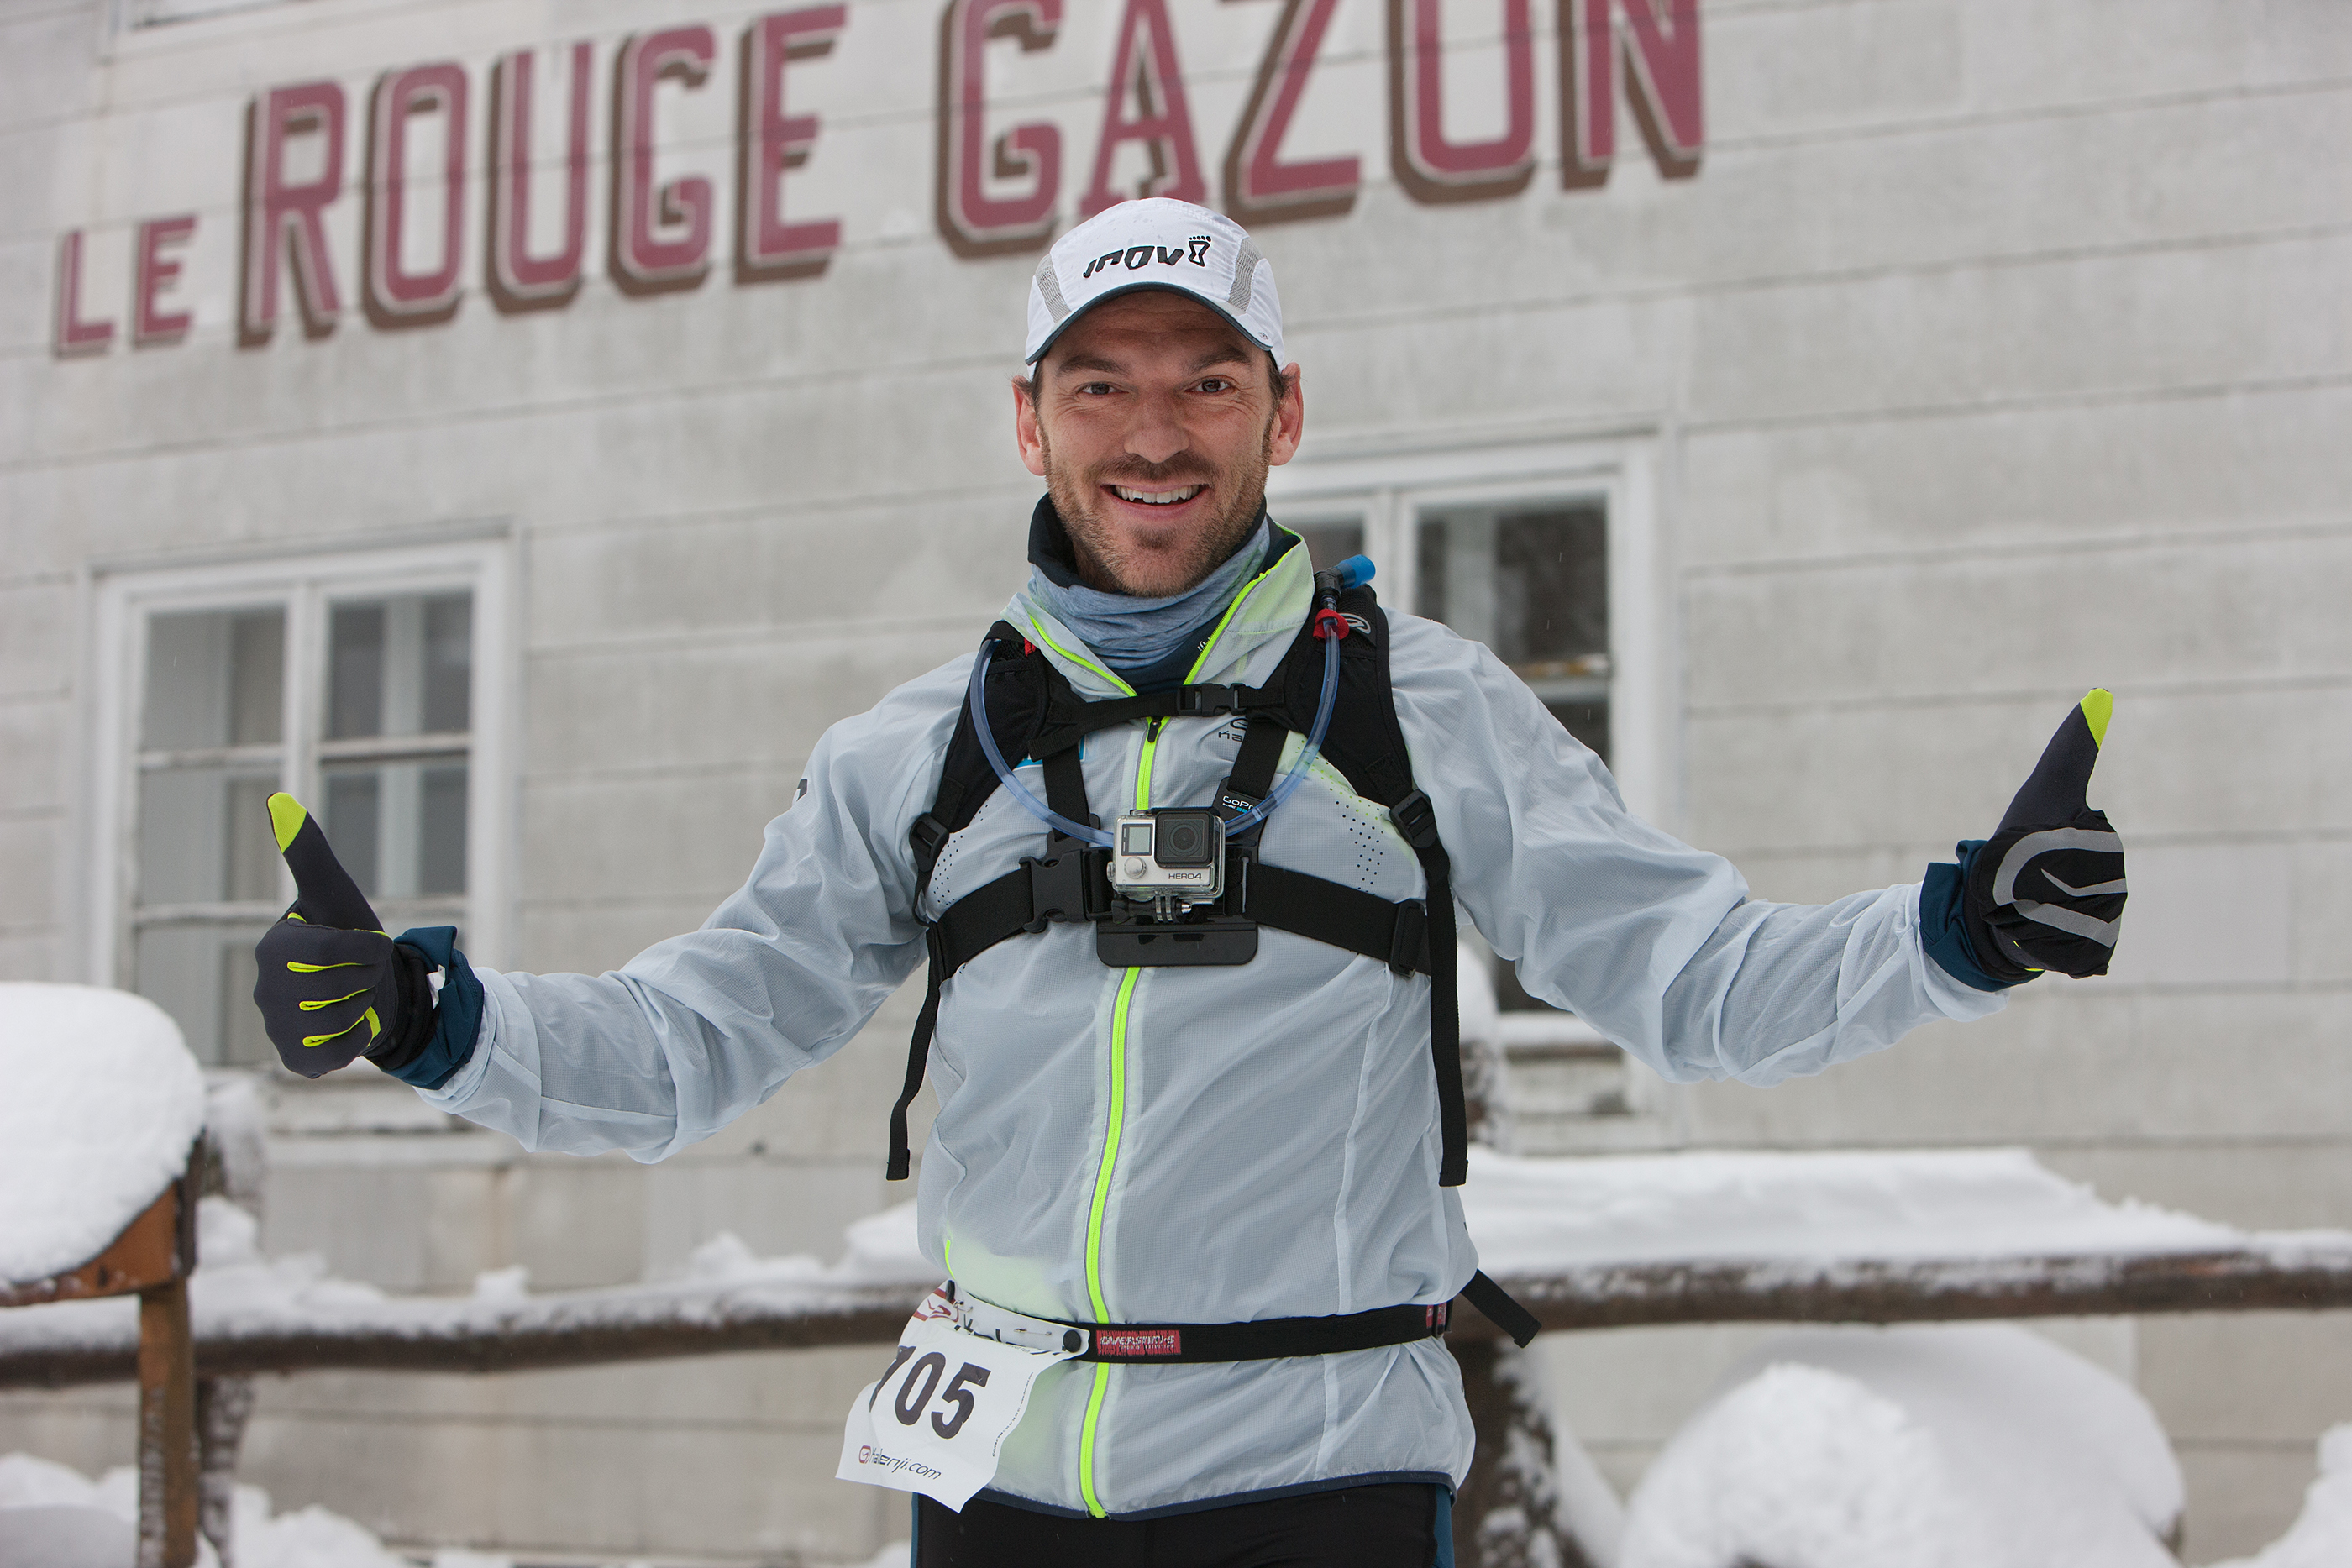 Trail Blanc Rouge Gazon